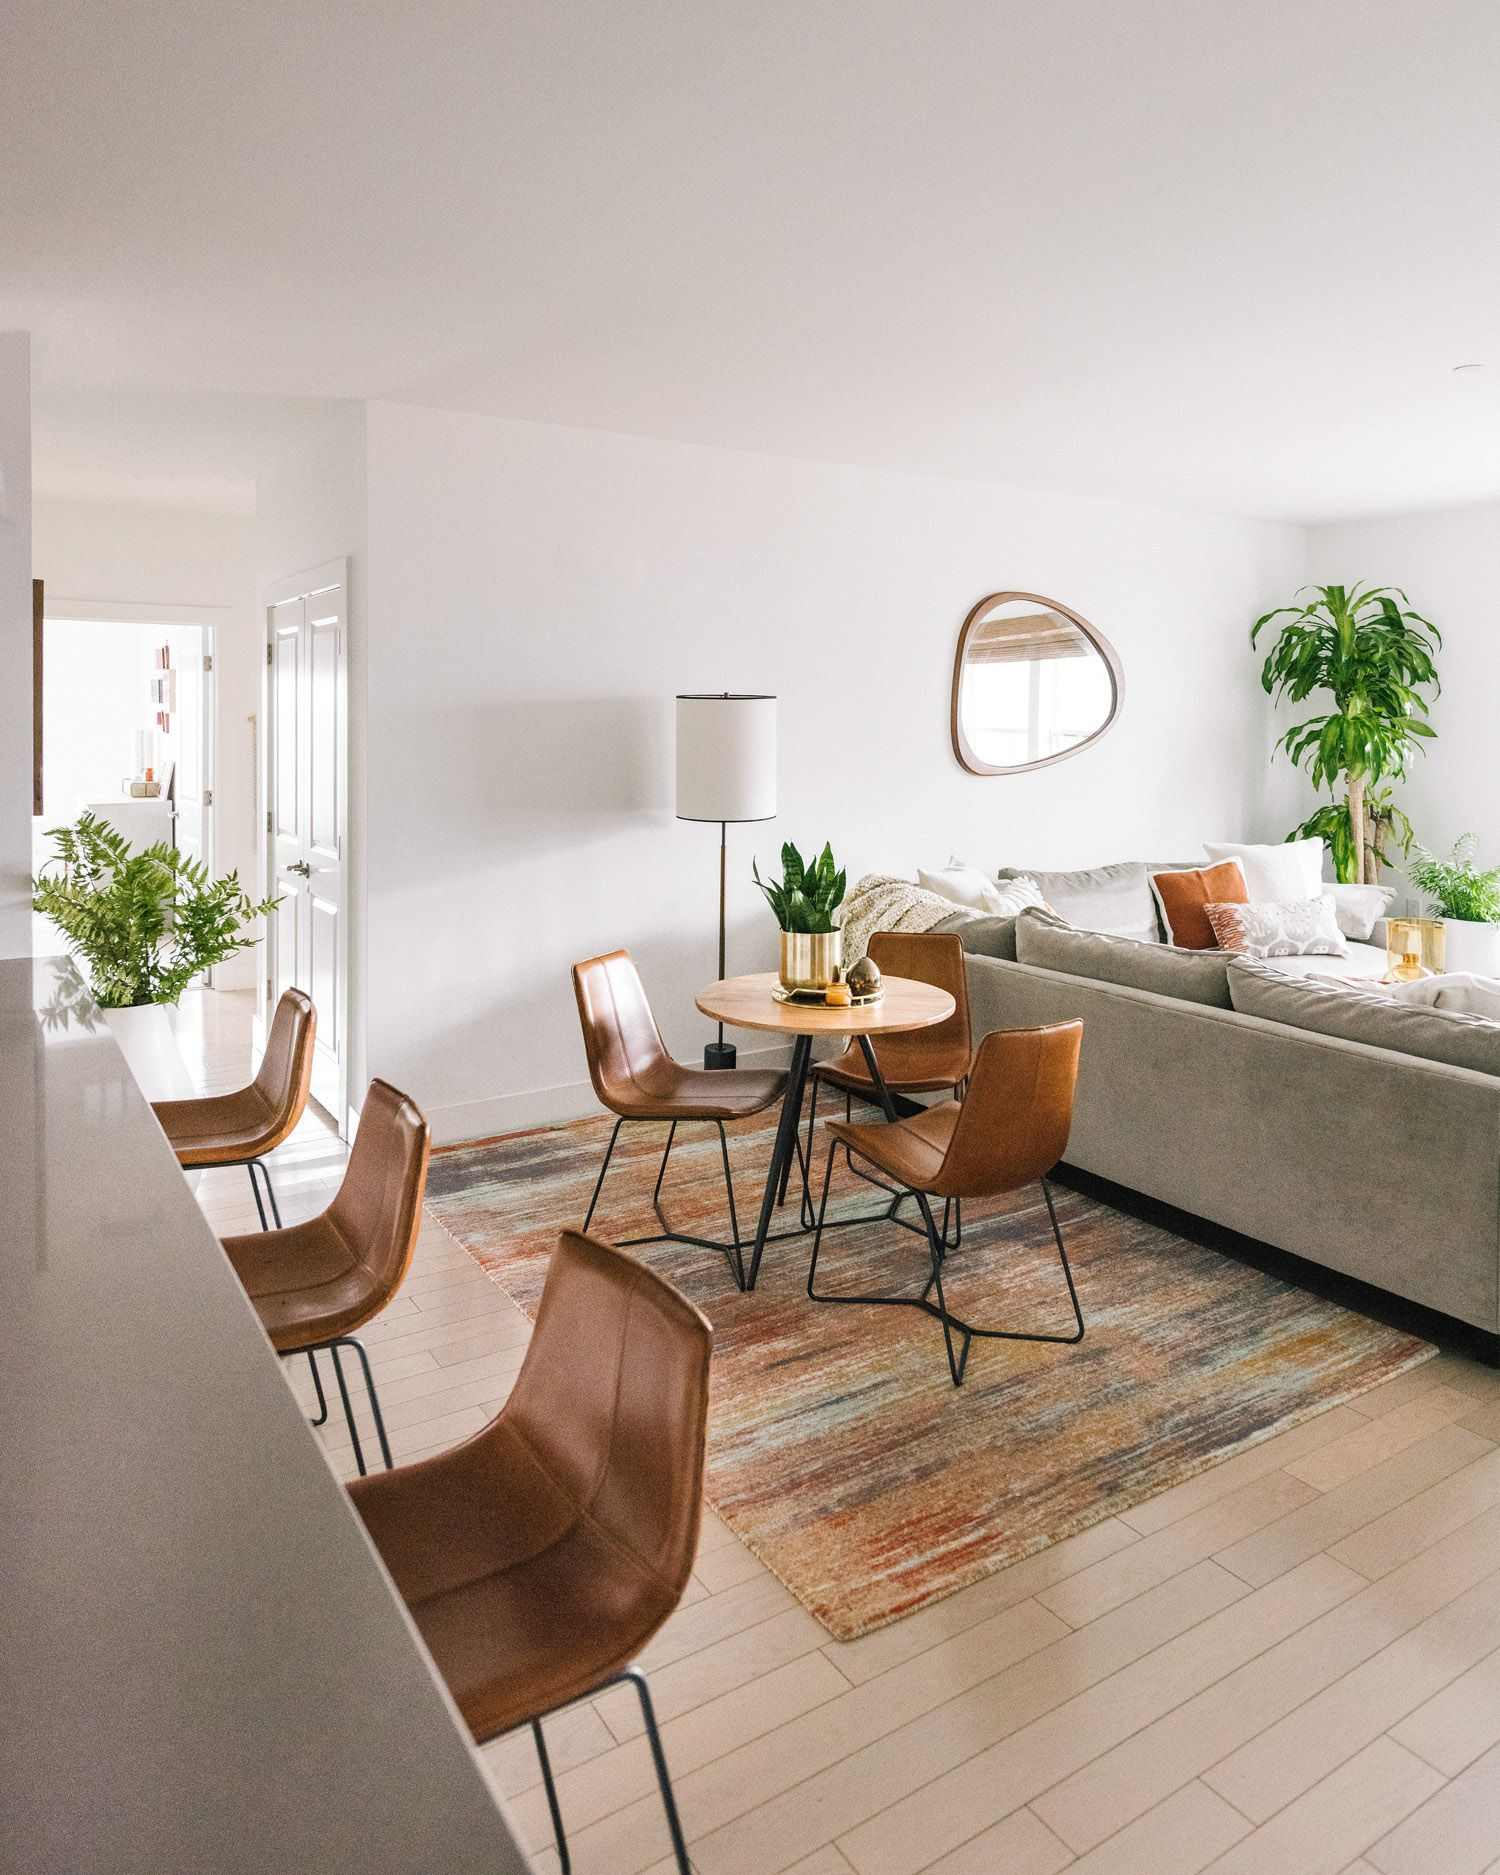 Design Crew Natural Hues Waterfront Views In Port Chester New York Front Main Apartment Dining Minimalist Living Room Decor Home